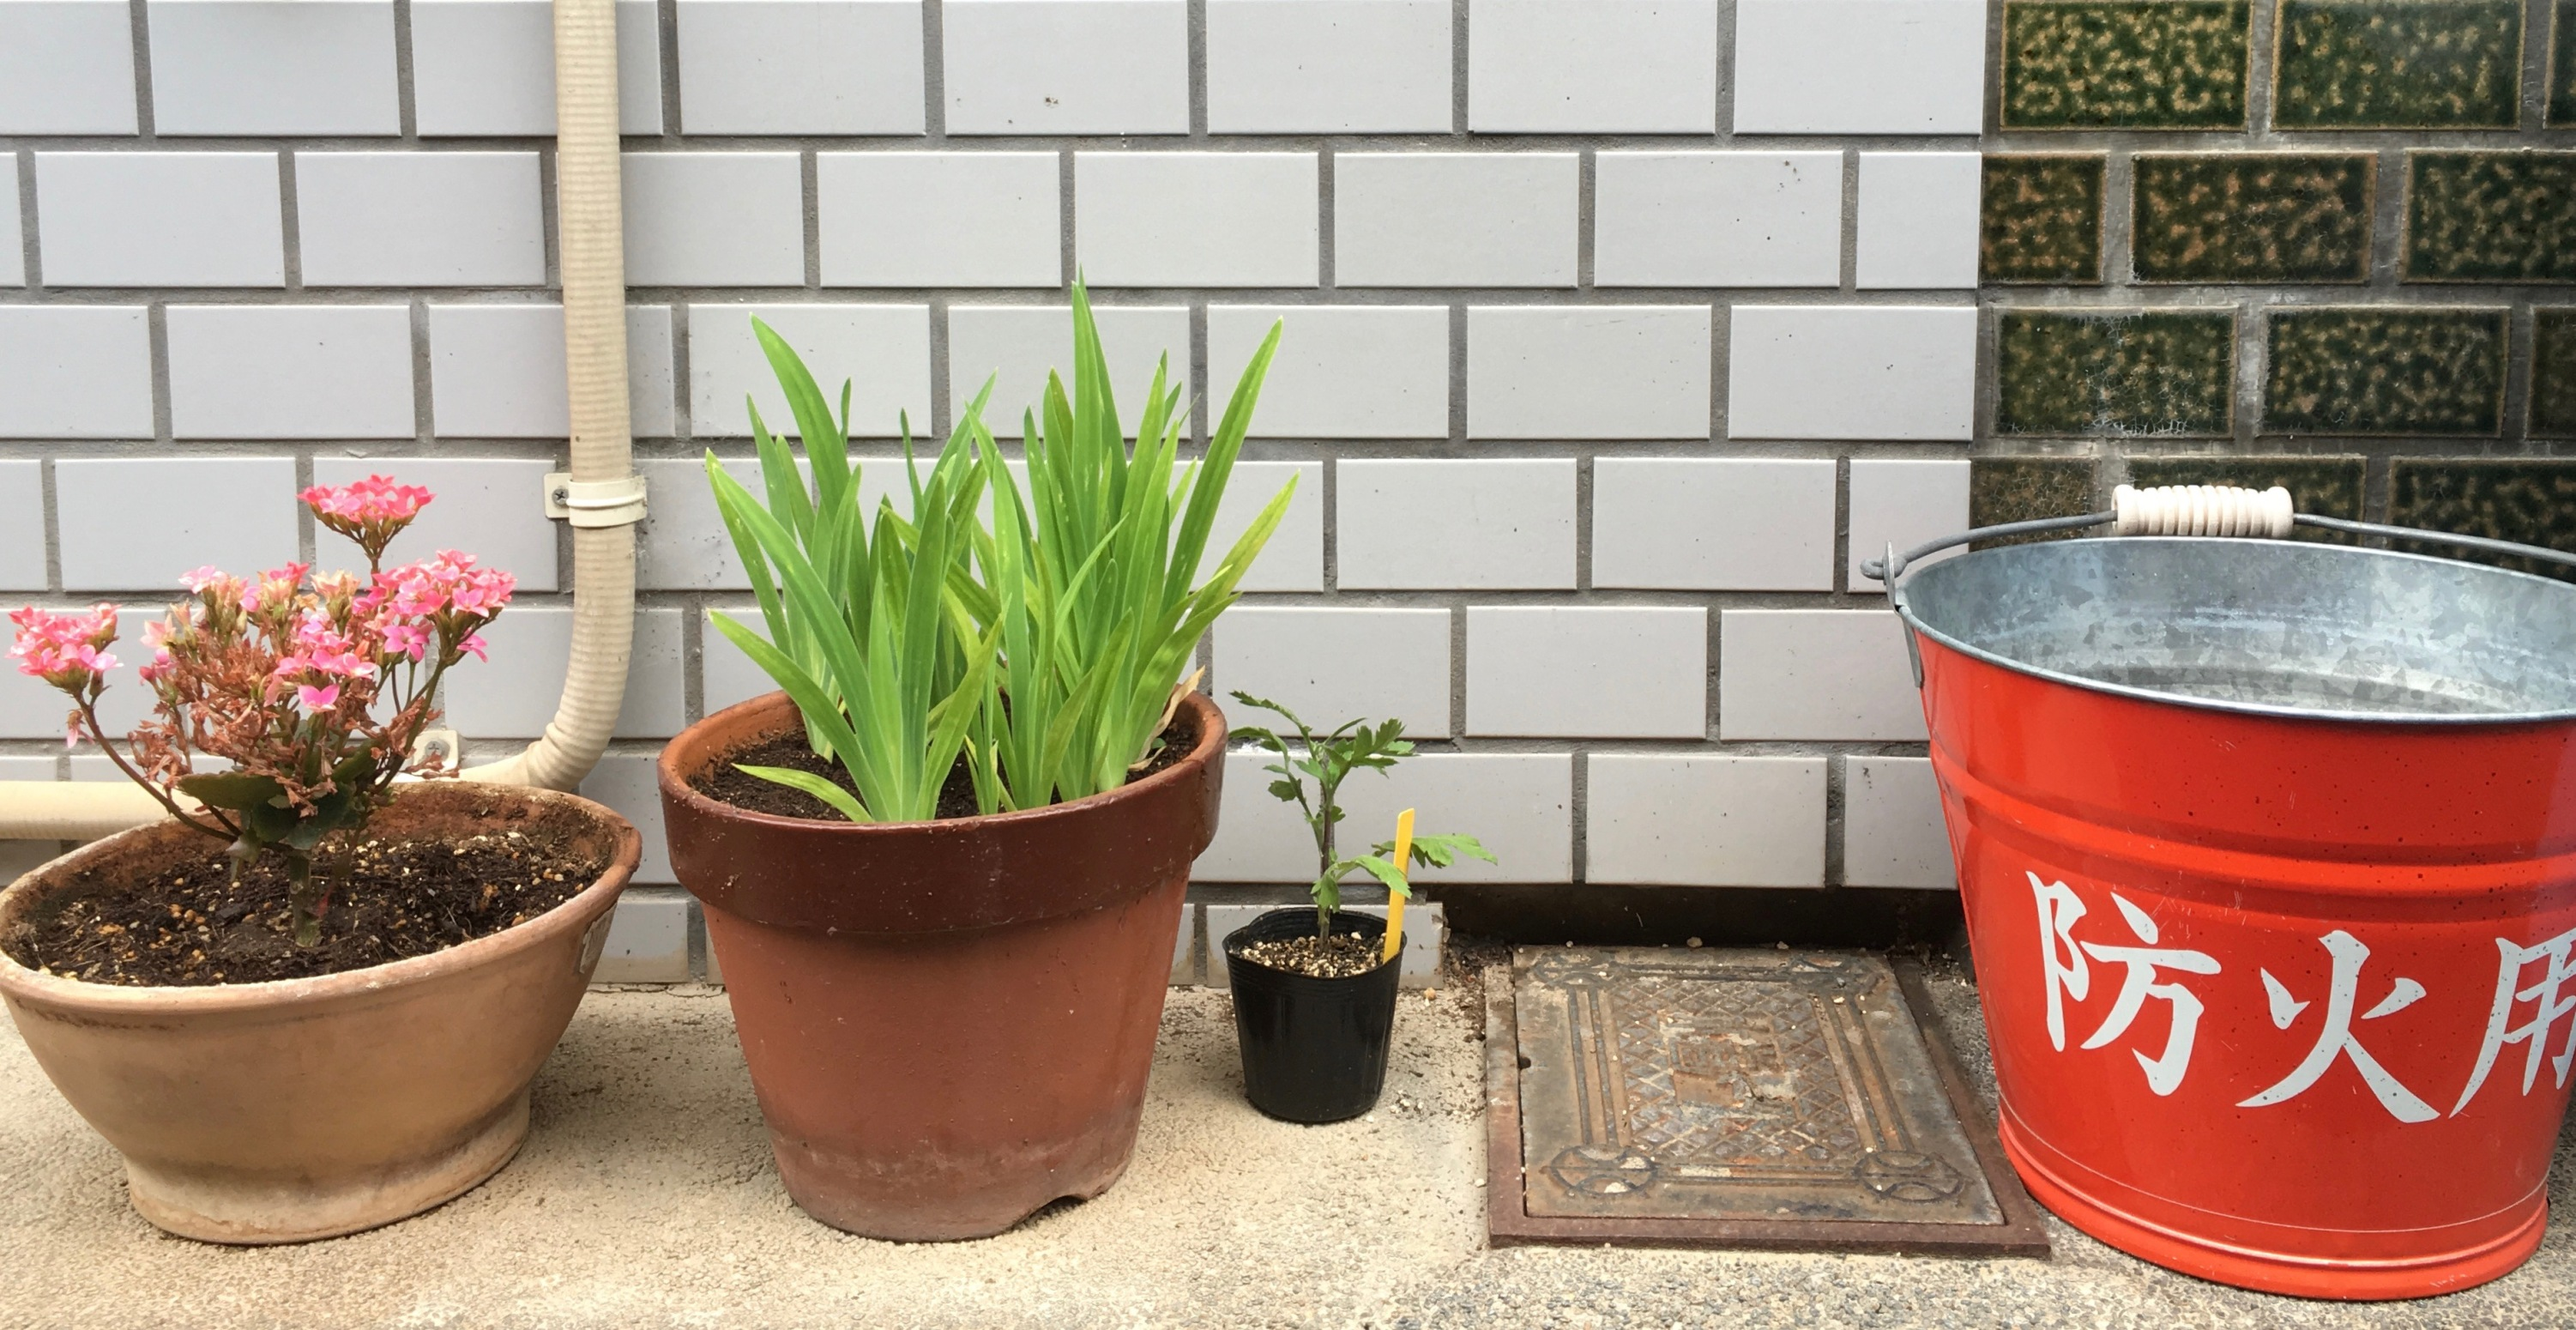 Here is a fire bucket on its own, apart from the pot-plants which I also like to photograph. And the tiles behind them.